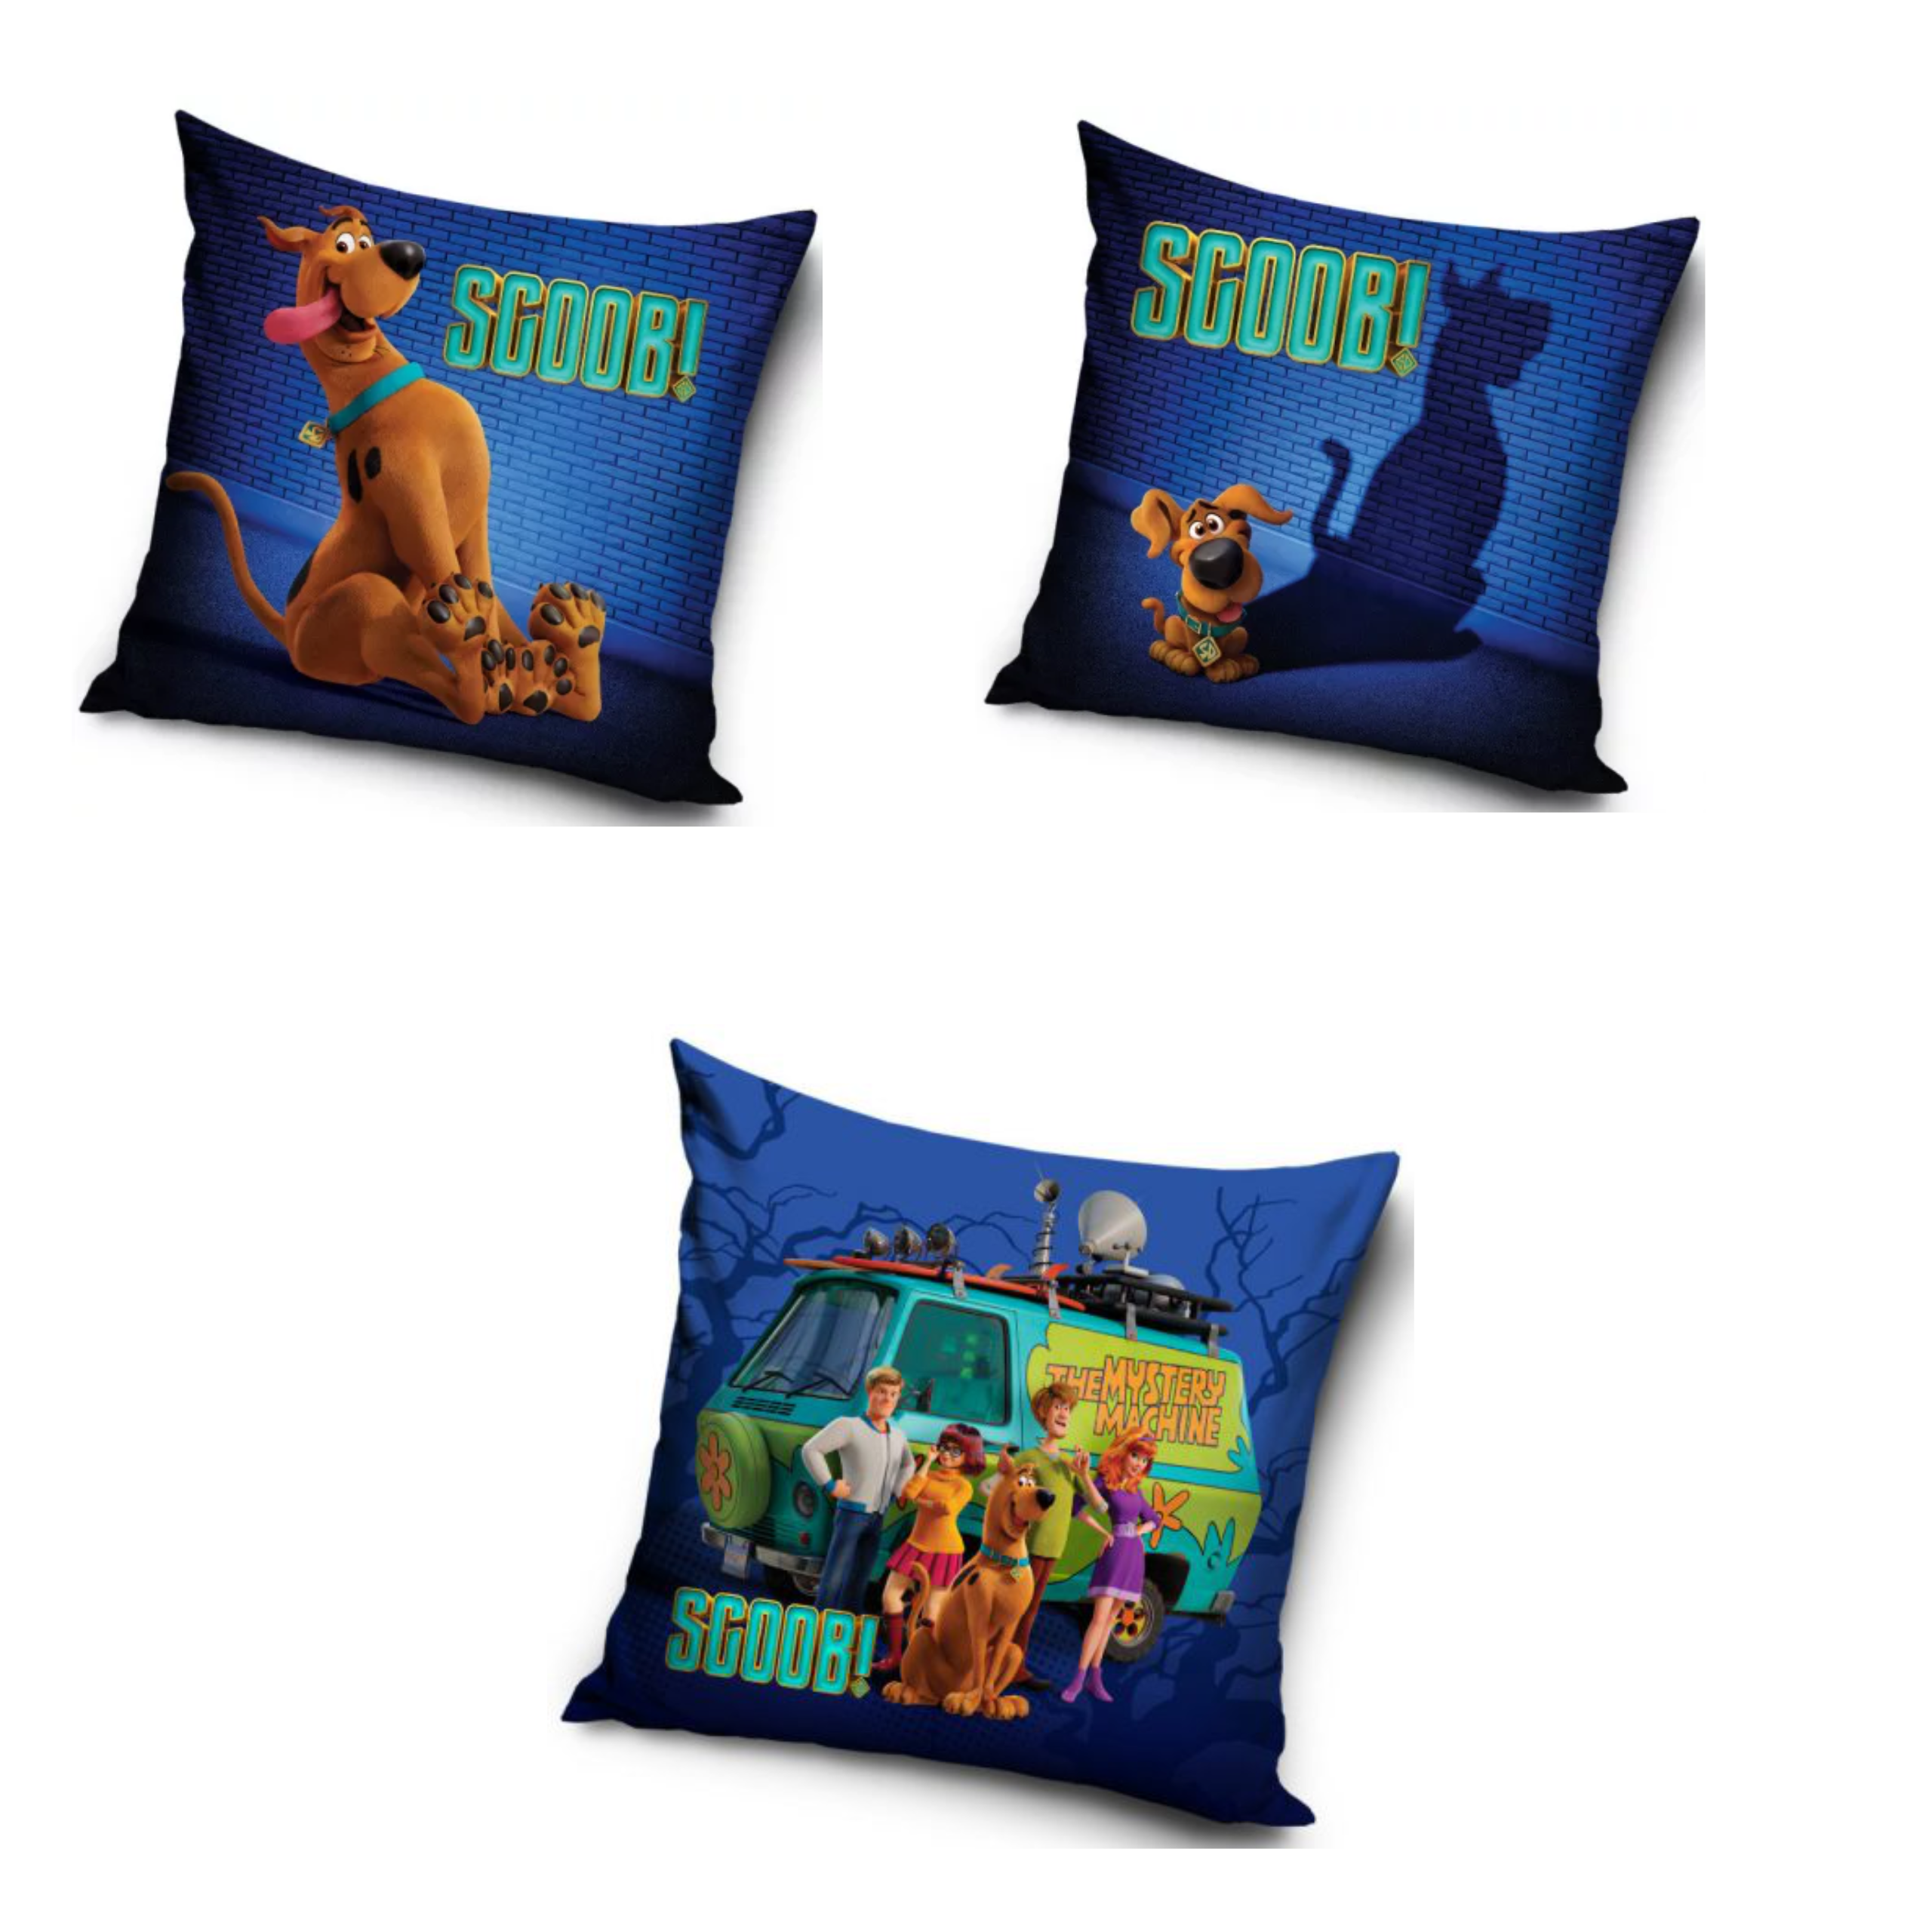 Scooby Doo Three Pack Cushion Set